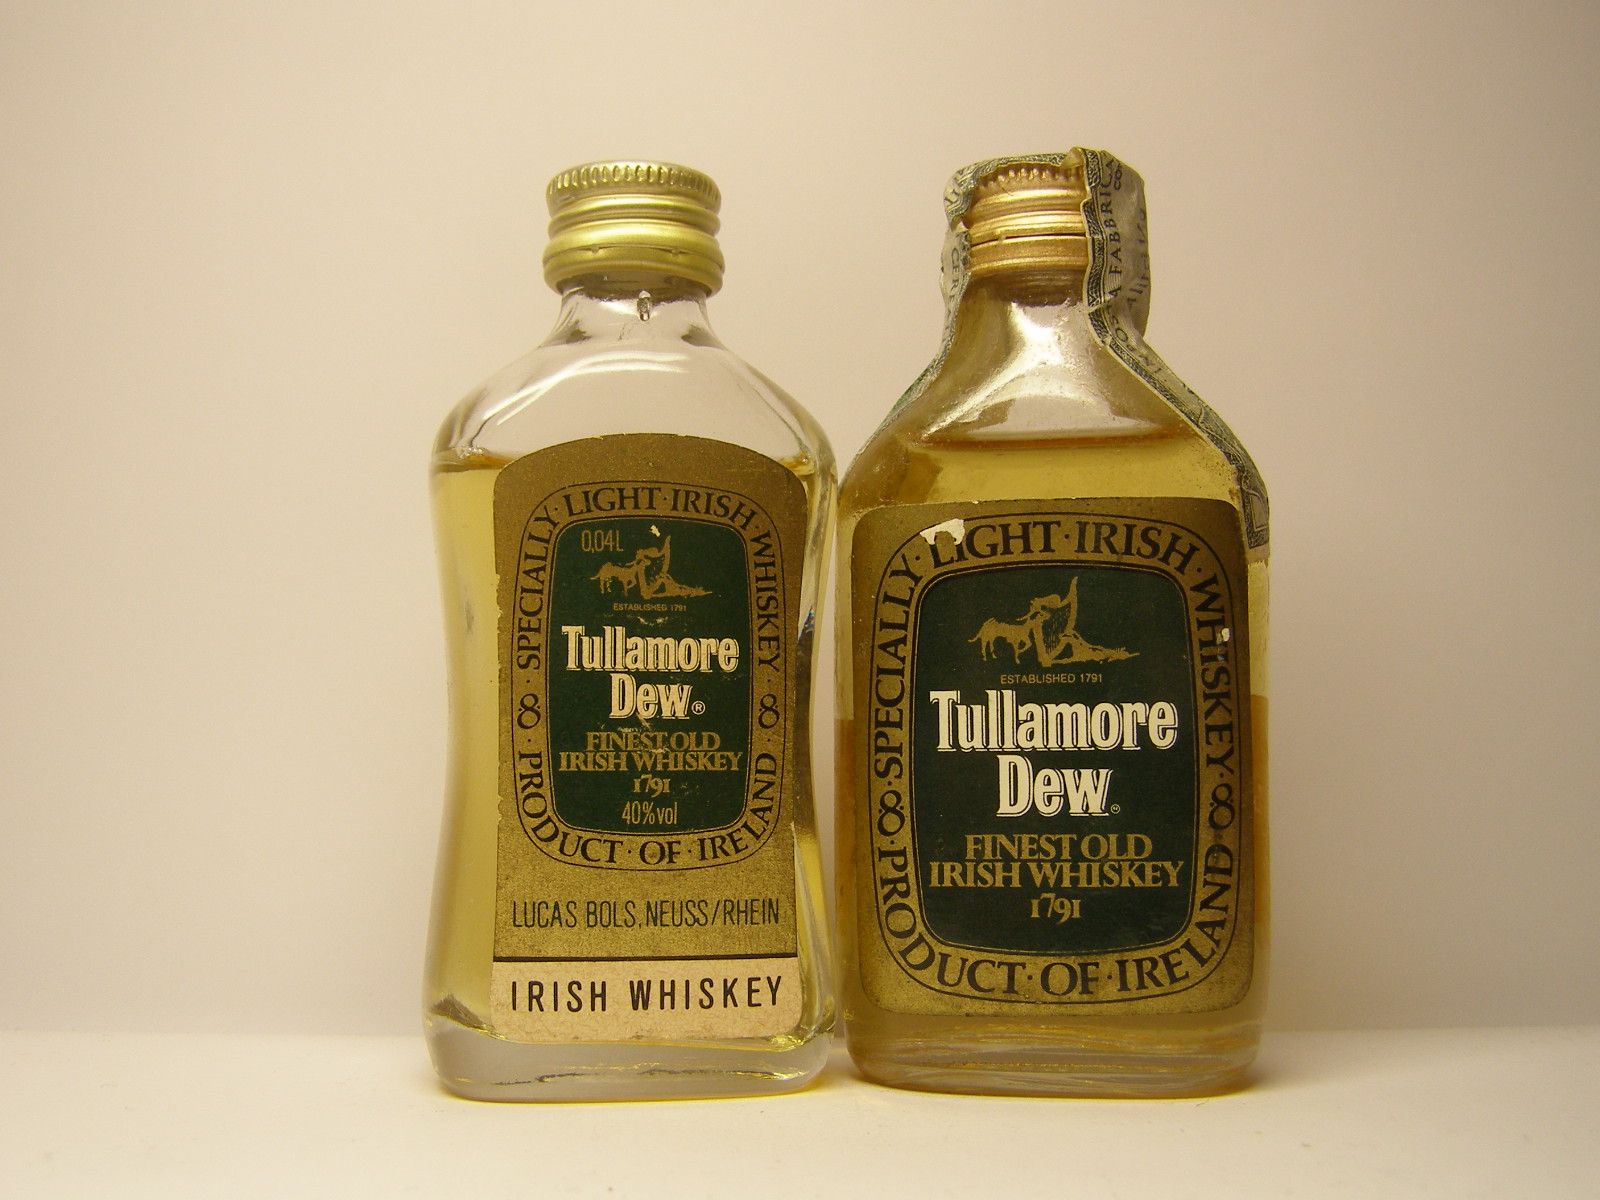 TULLAMORE DEW Finest Old IW